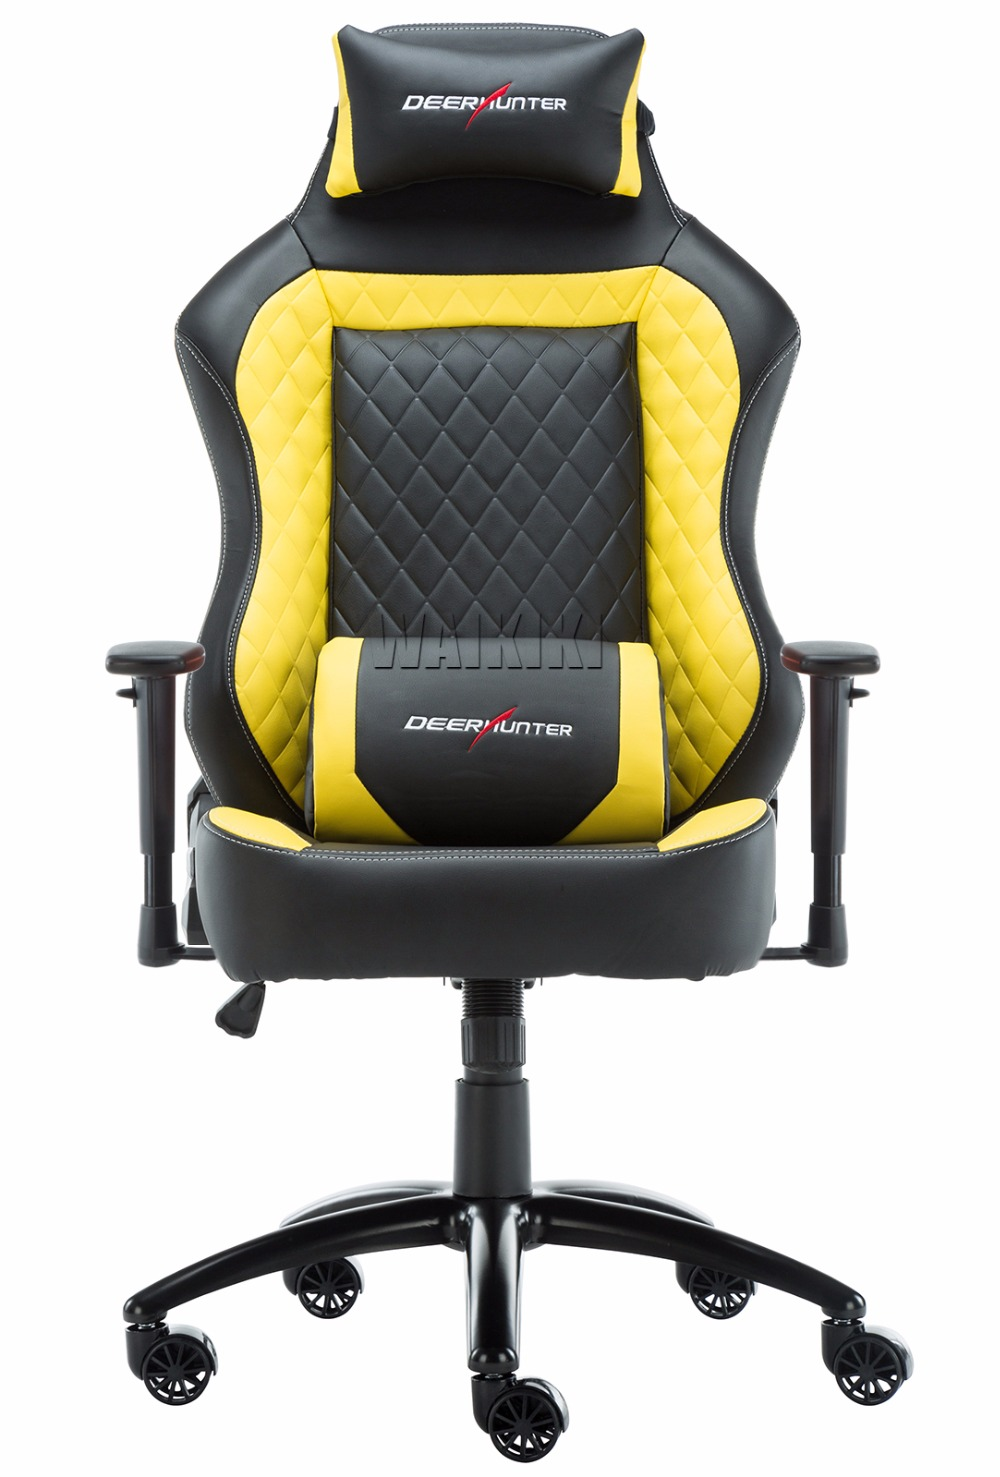 Racing Chair Gas Lift Swivel Gaming Chair Tilt Degree Adjustable Computer Chair Caster Base HOT SALE racing chair gas lift swivel gaming chair tilt degree adjustable computer chair caster base hot sale